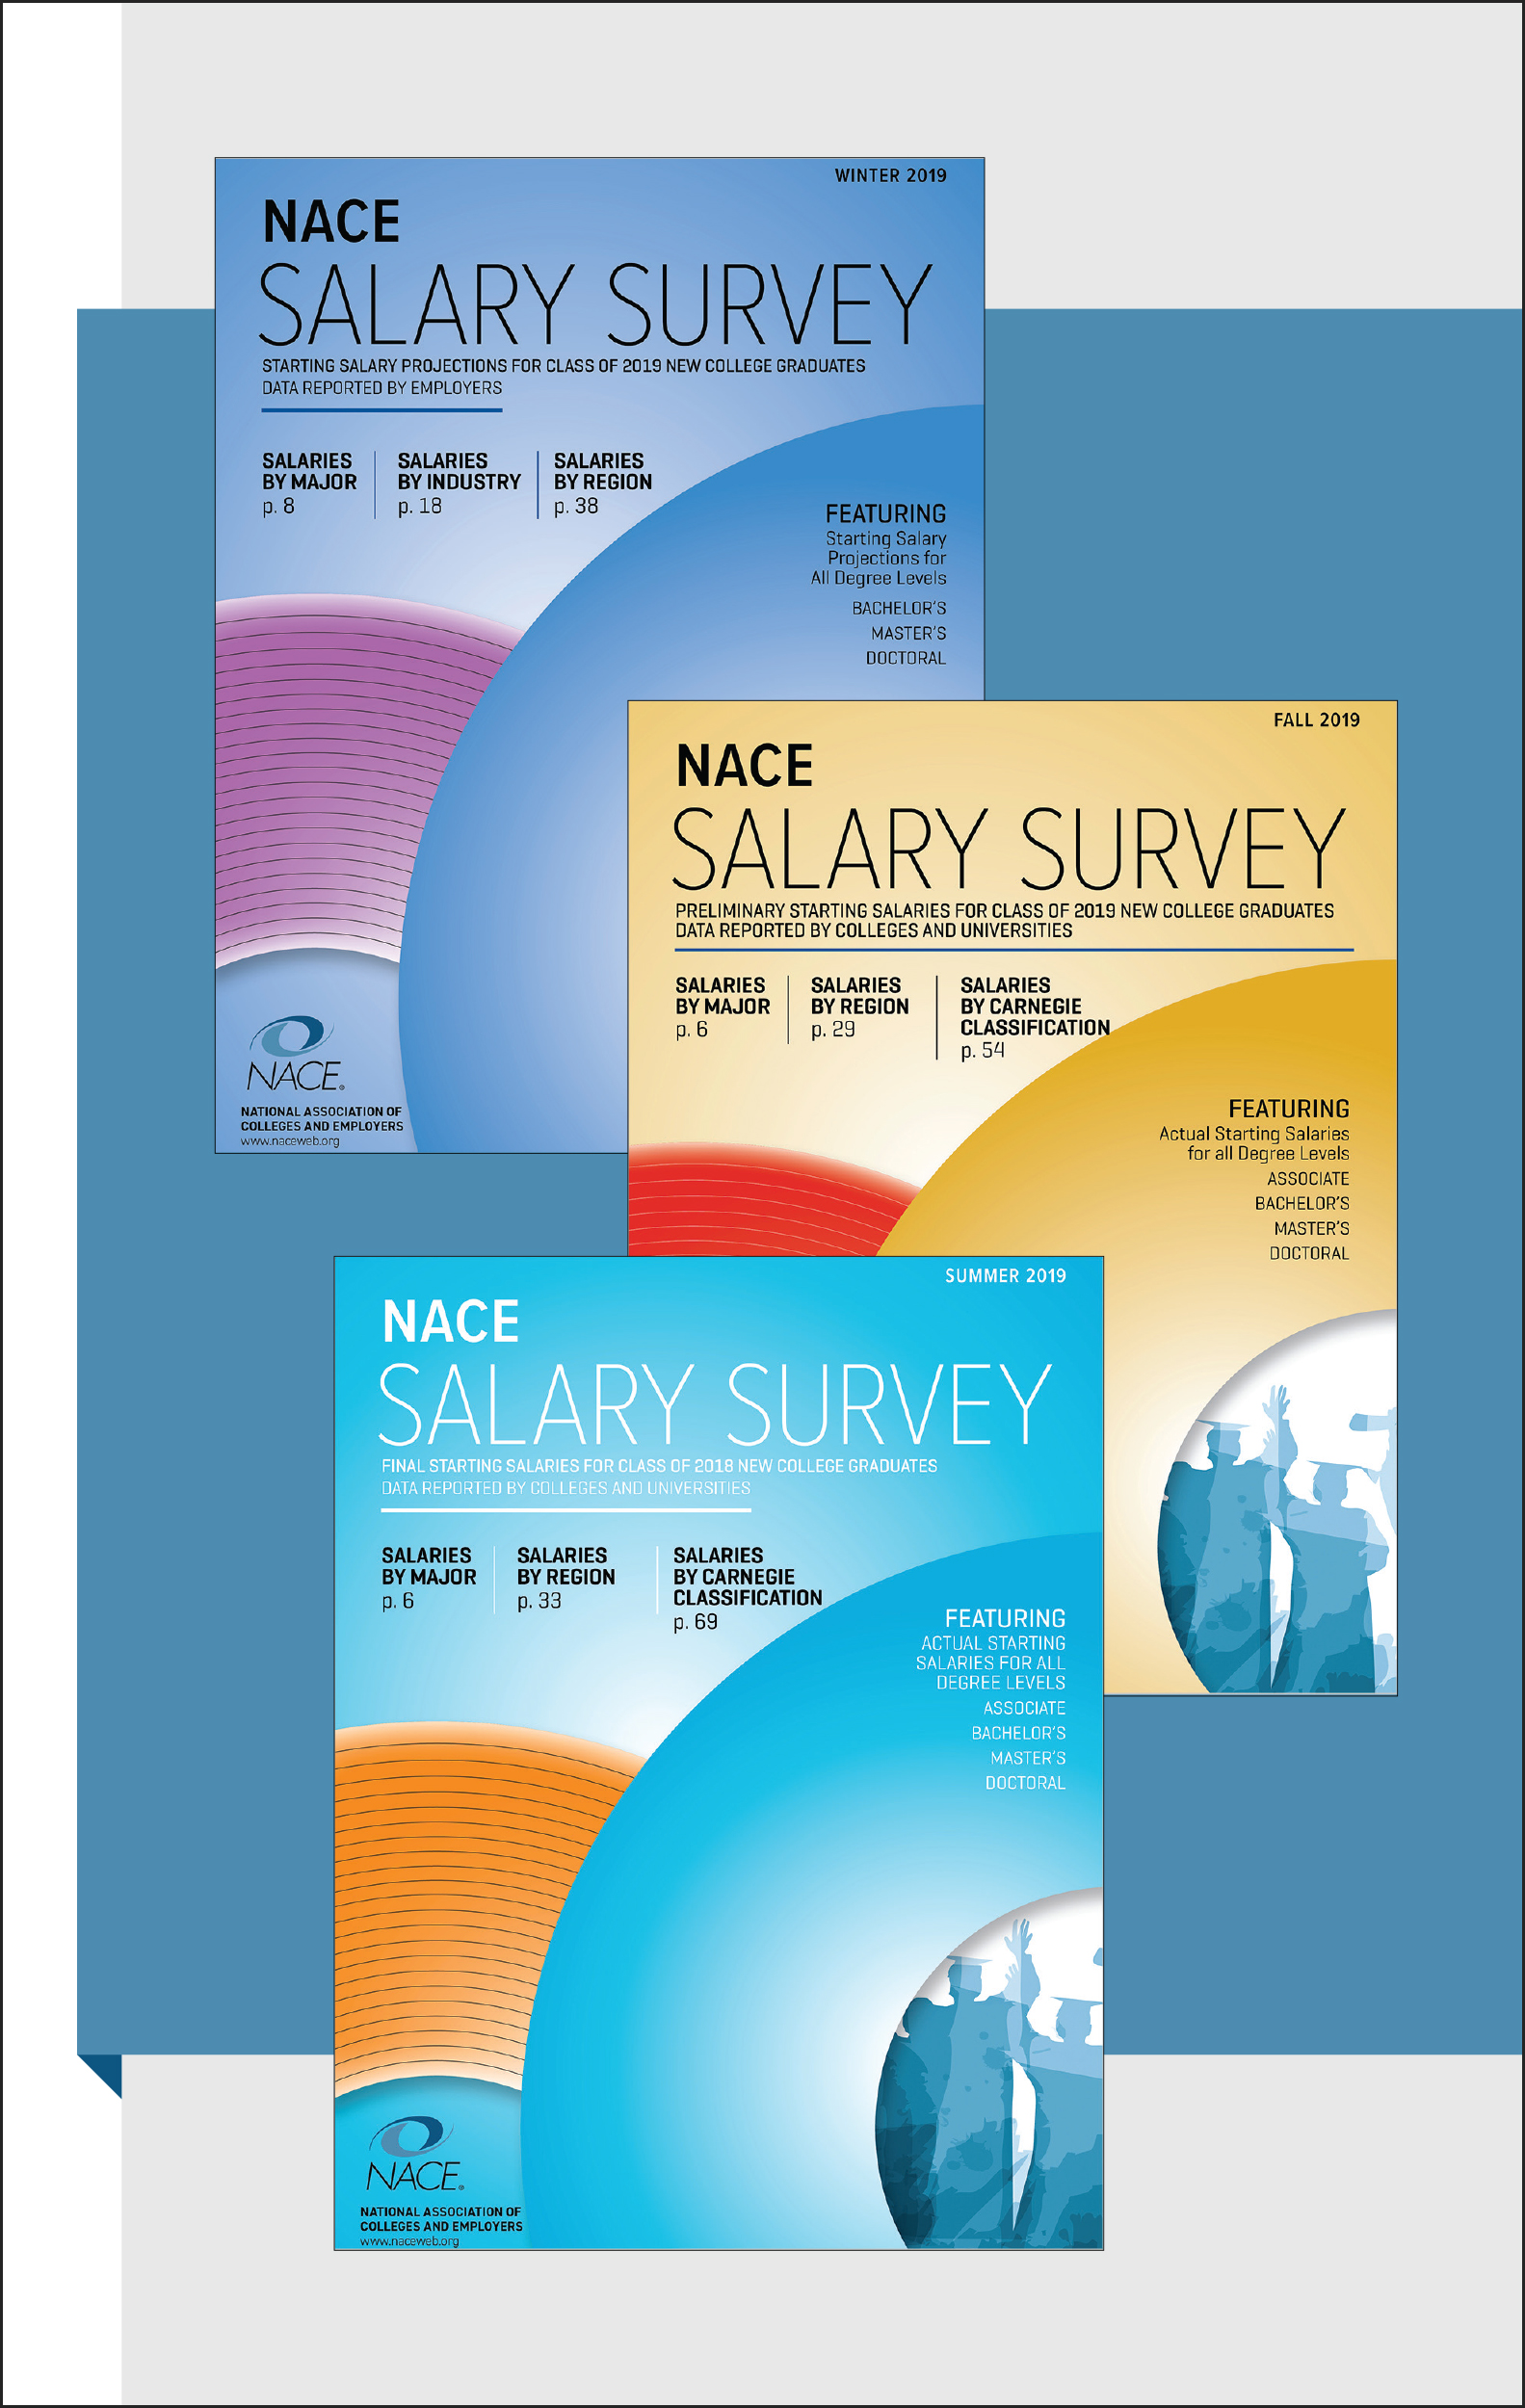 The cover of the Winter NACE Salary Survey.